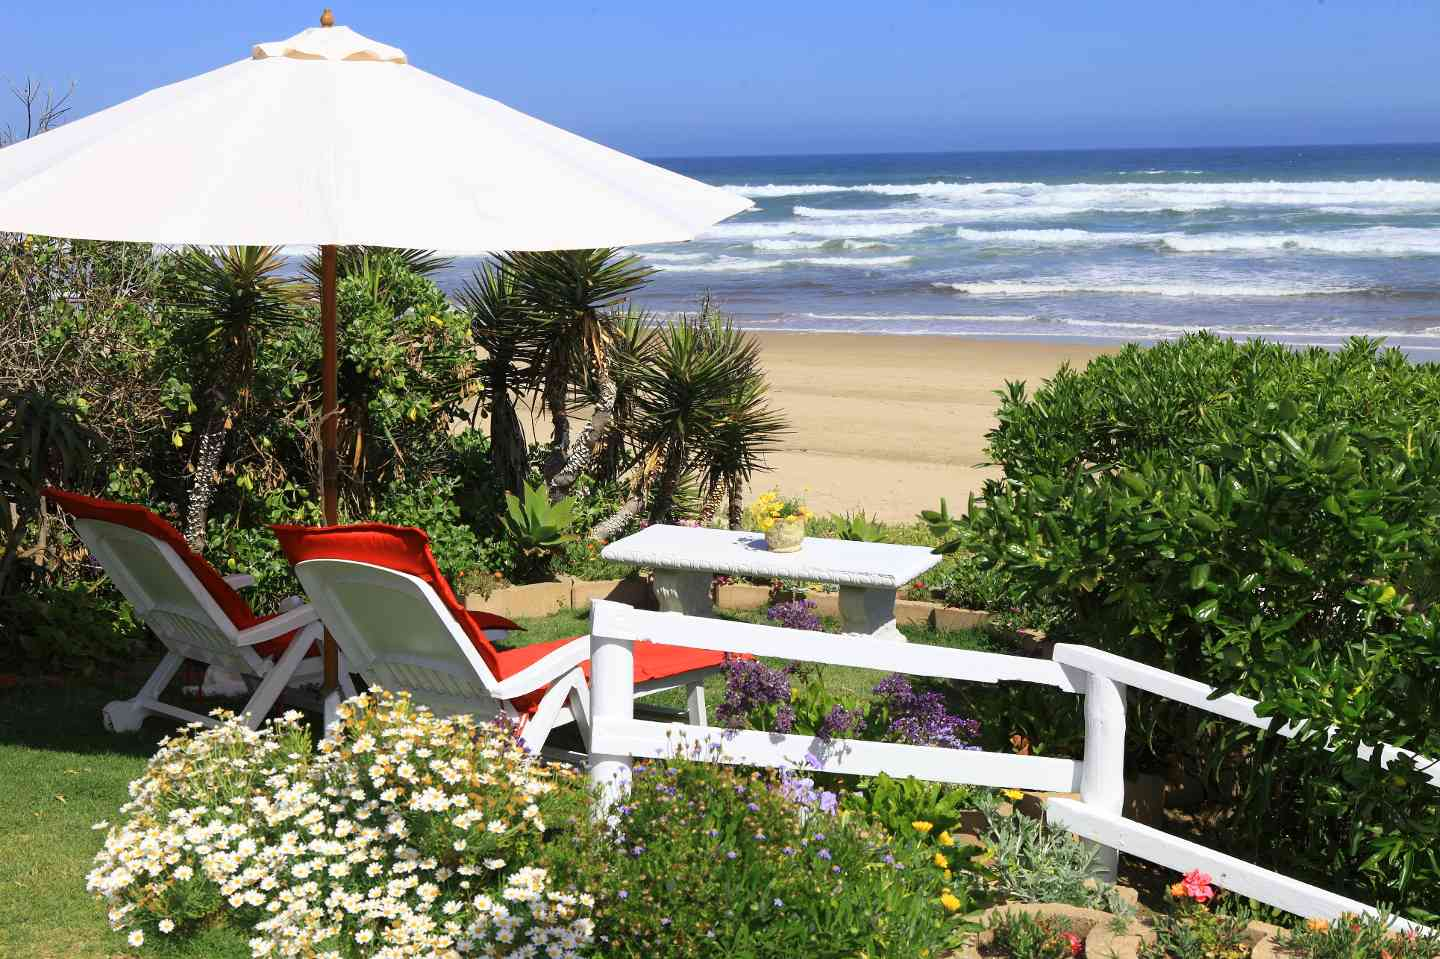 Haus am Strand Wilderness South Africa